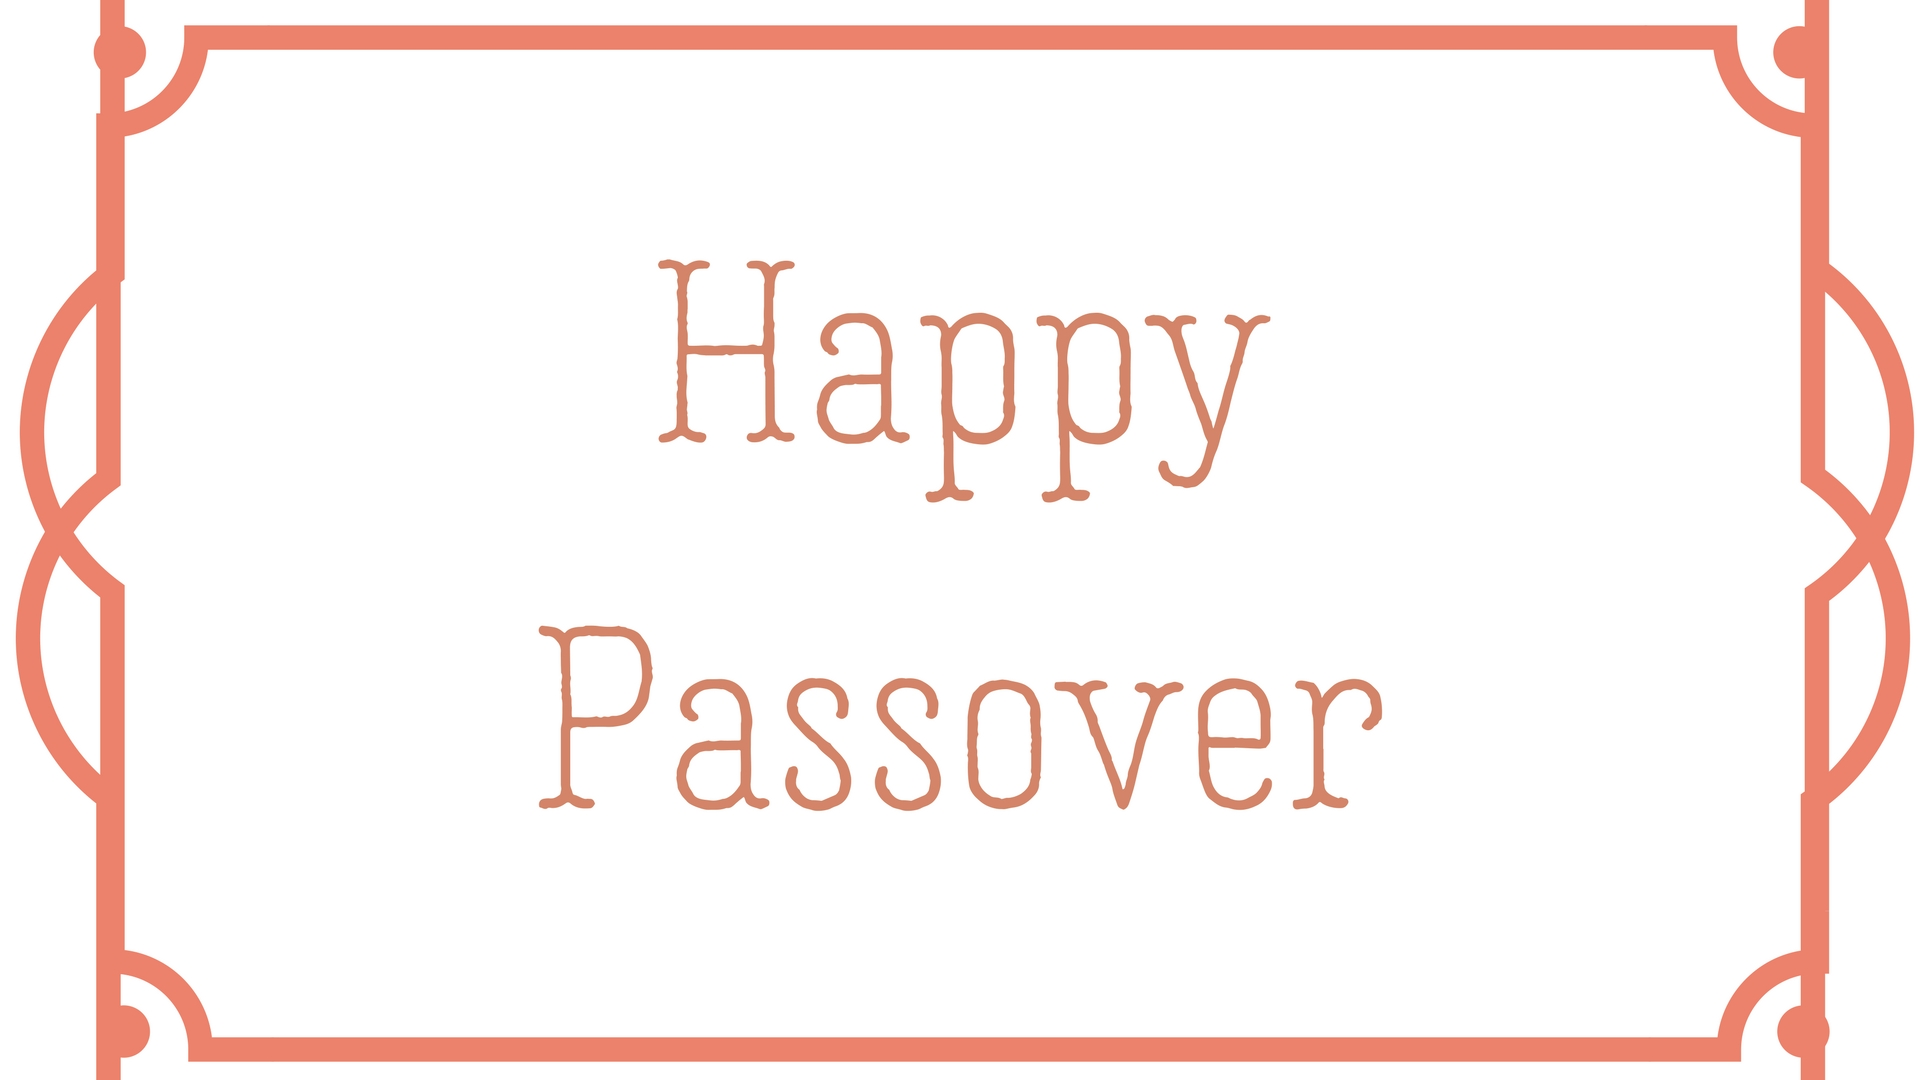 Happy Passover Rectangle Frame Greeting Card Postcard 10